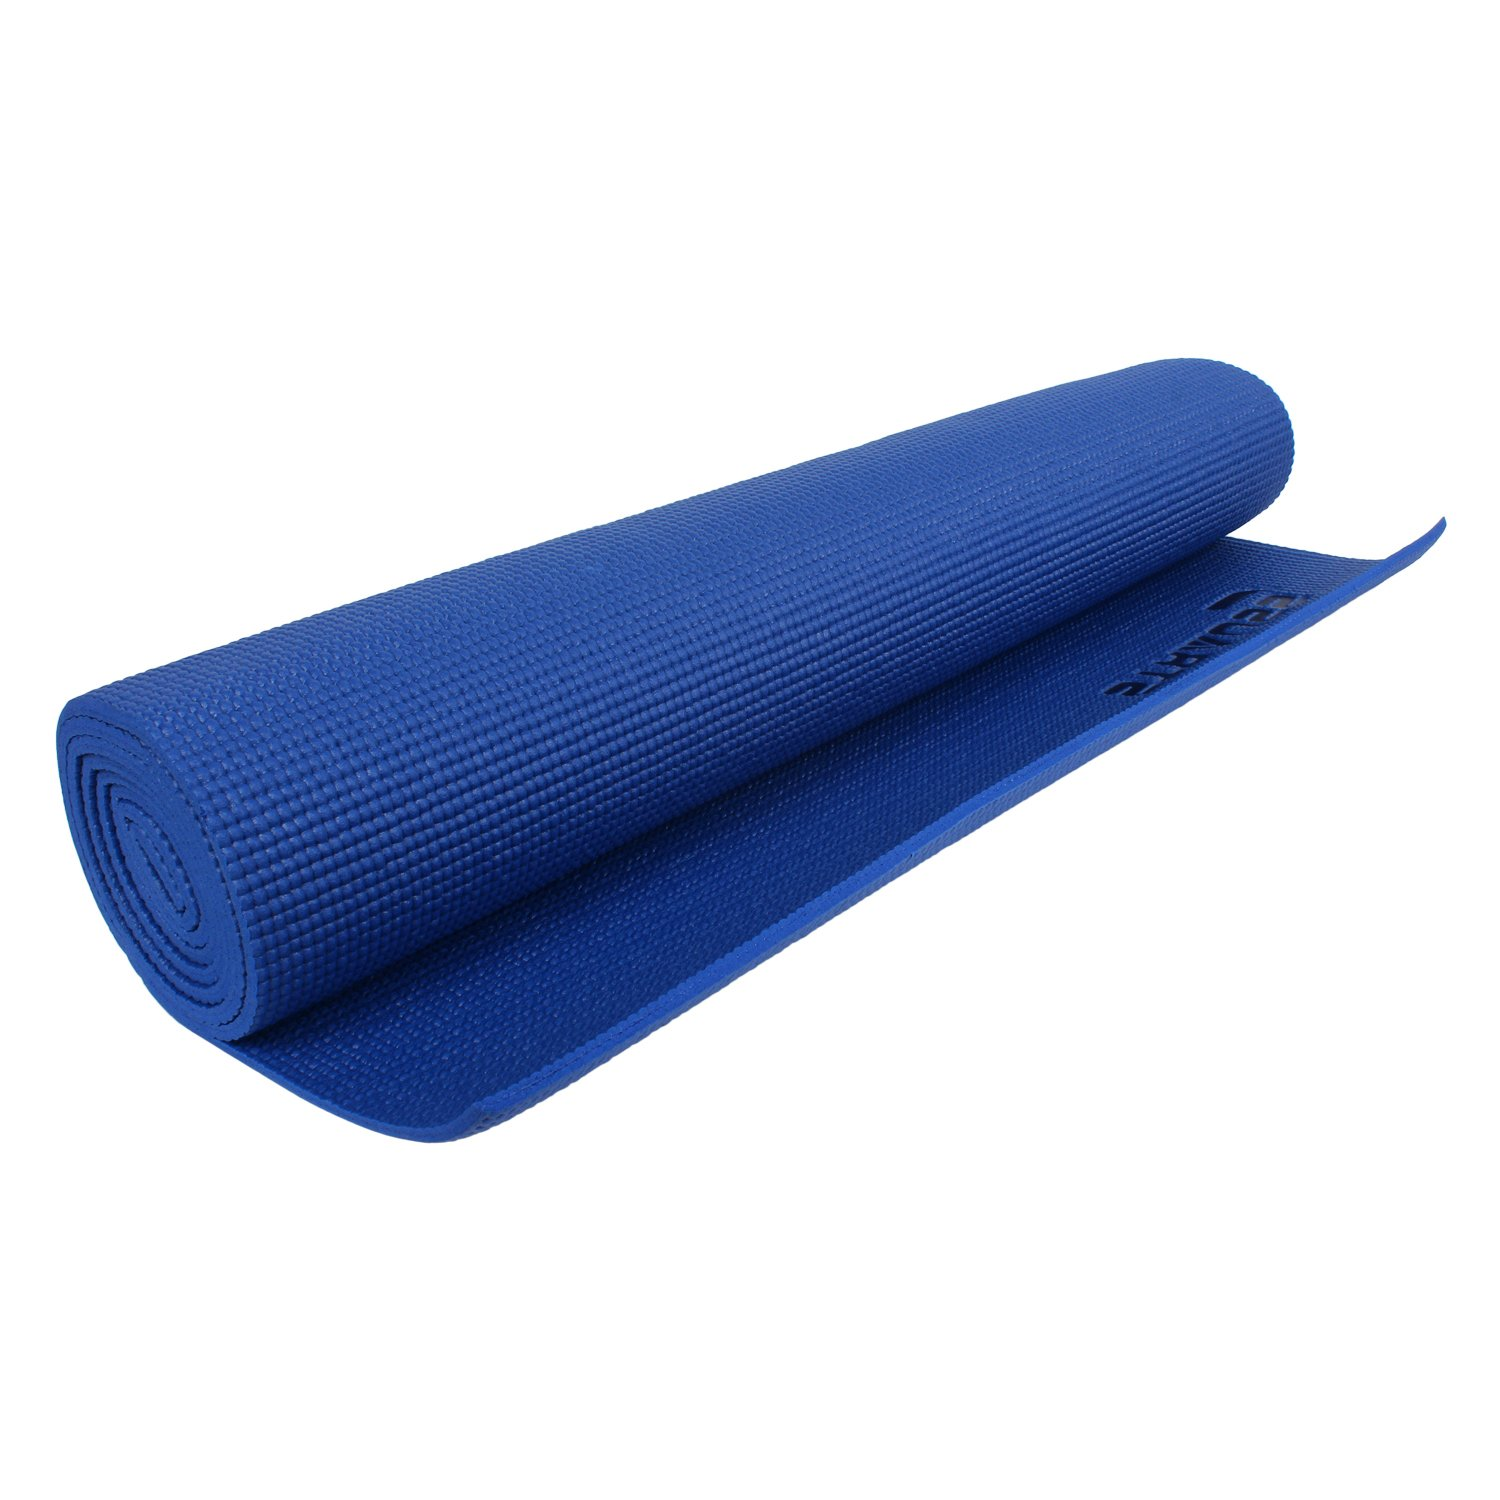 mats gear mat accessories yoga set n rec sunny fitness cheap sports pilates en walmart health other canada exercise